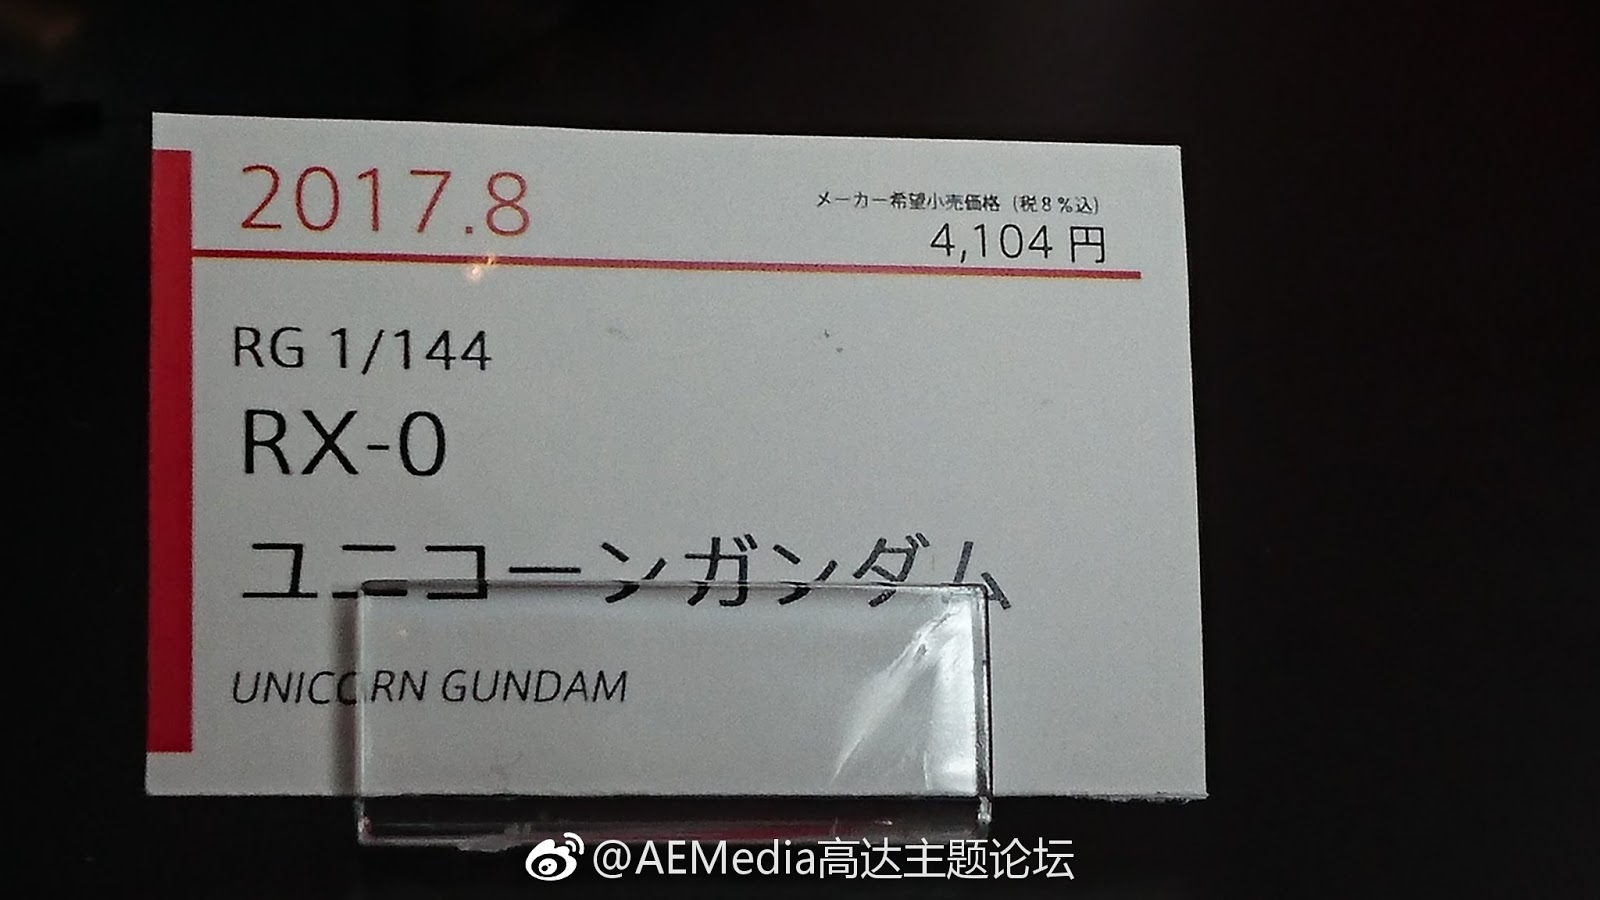 RG 1/144 Unicorn Gundam Exhibited at 56th Shizuoka Hobby Show